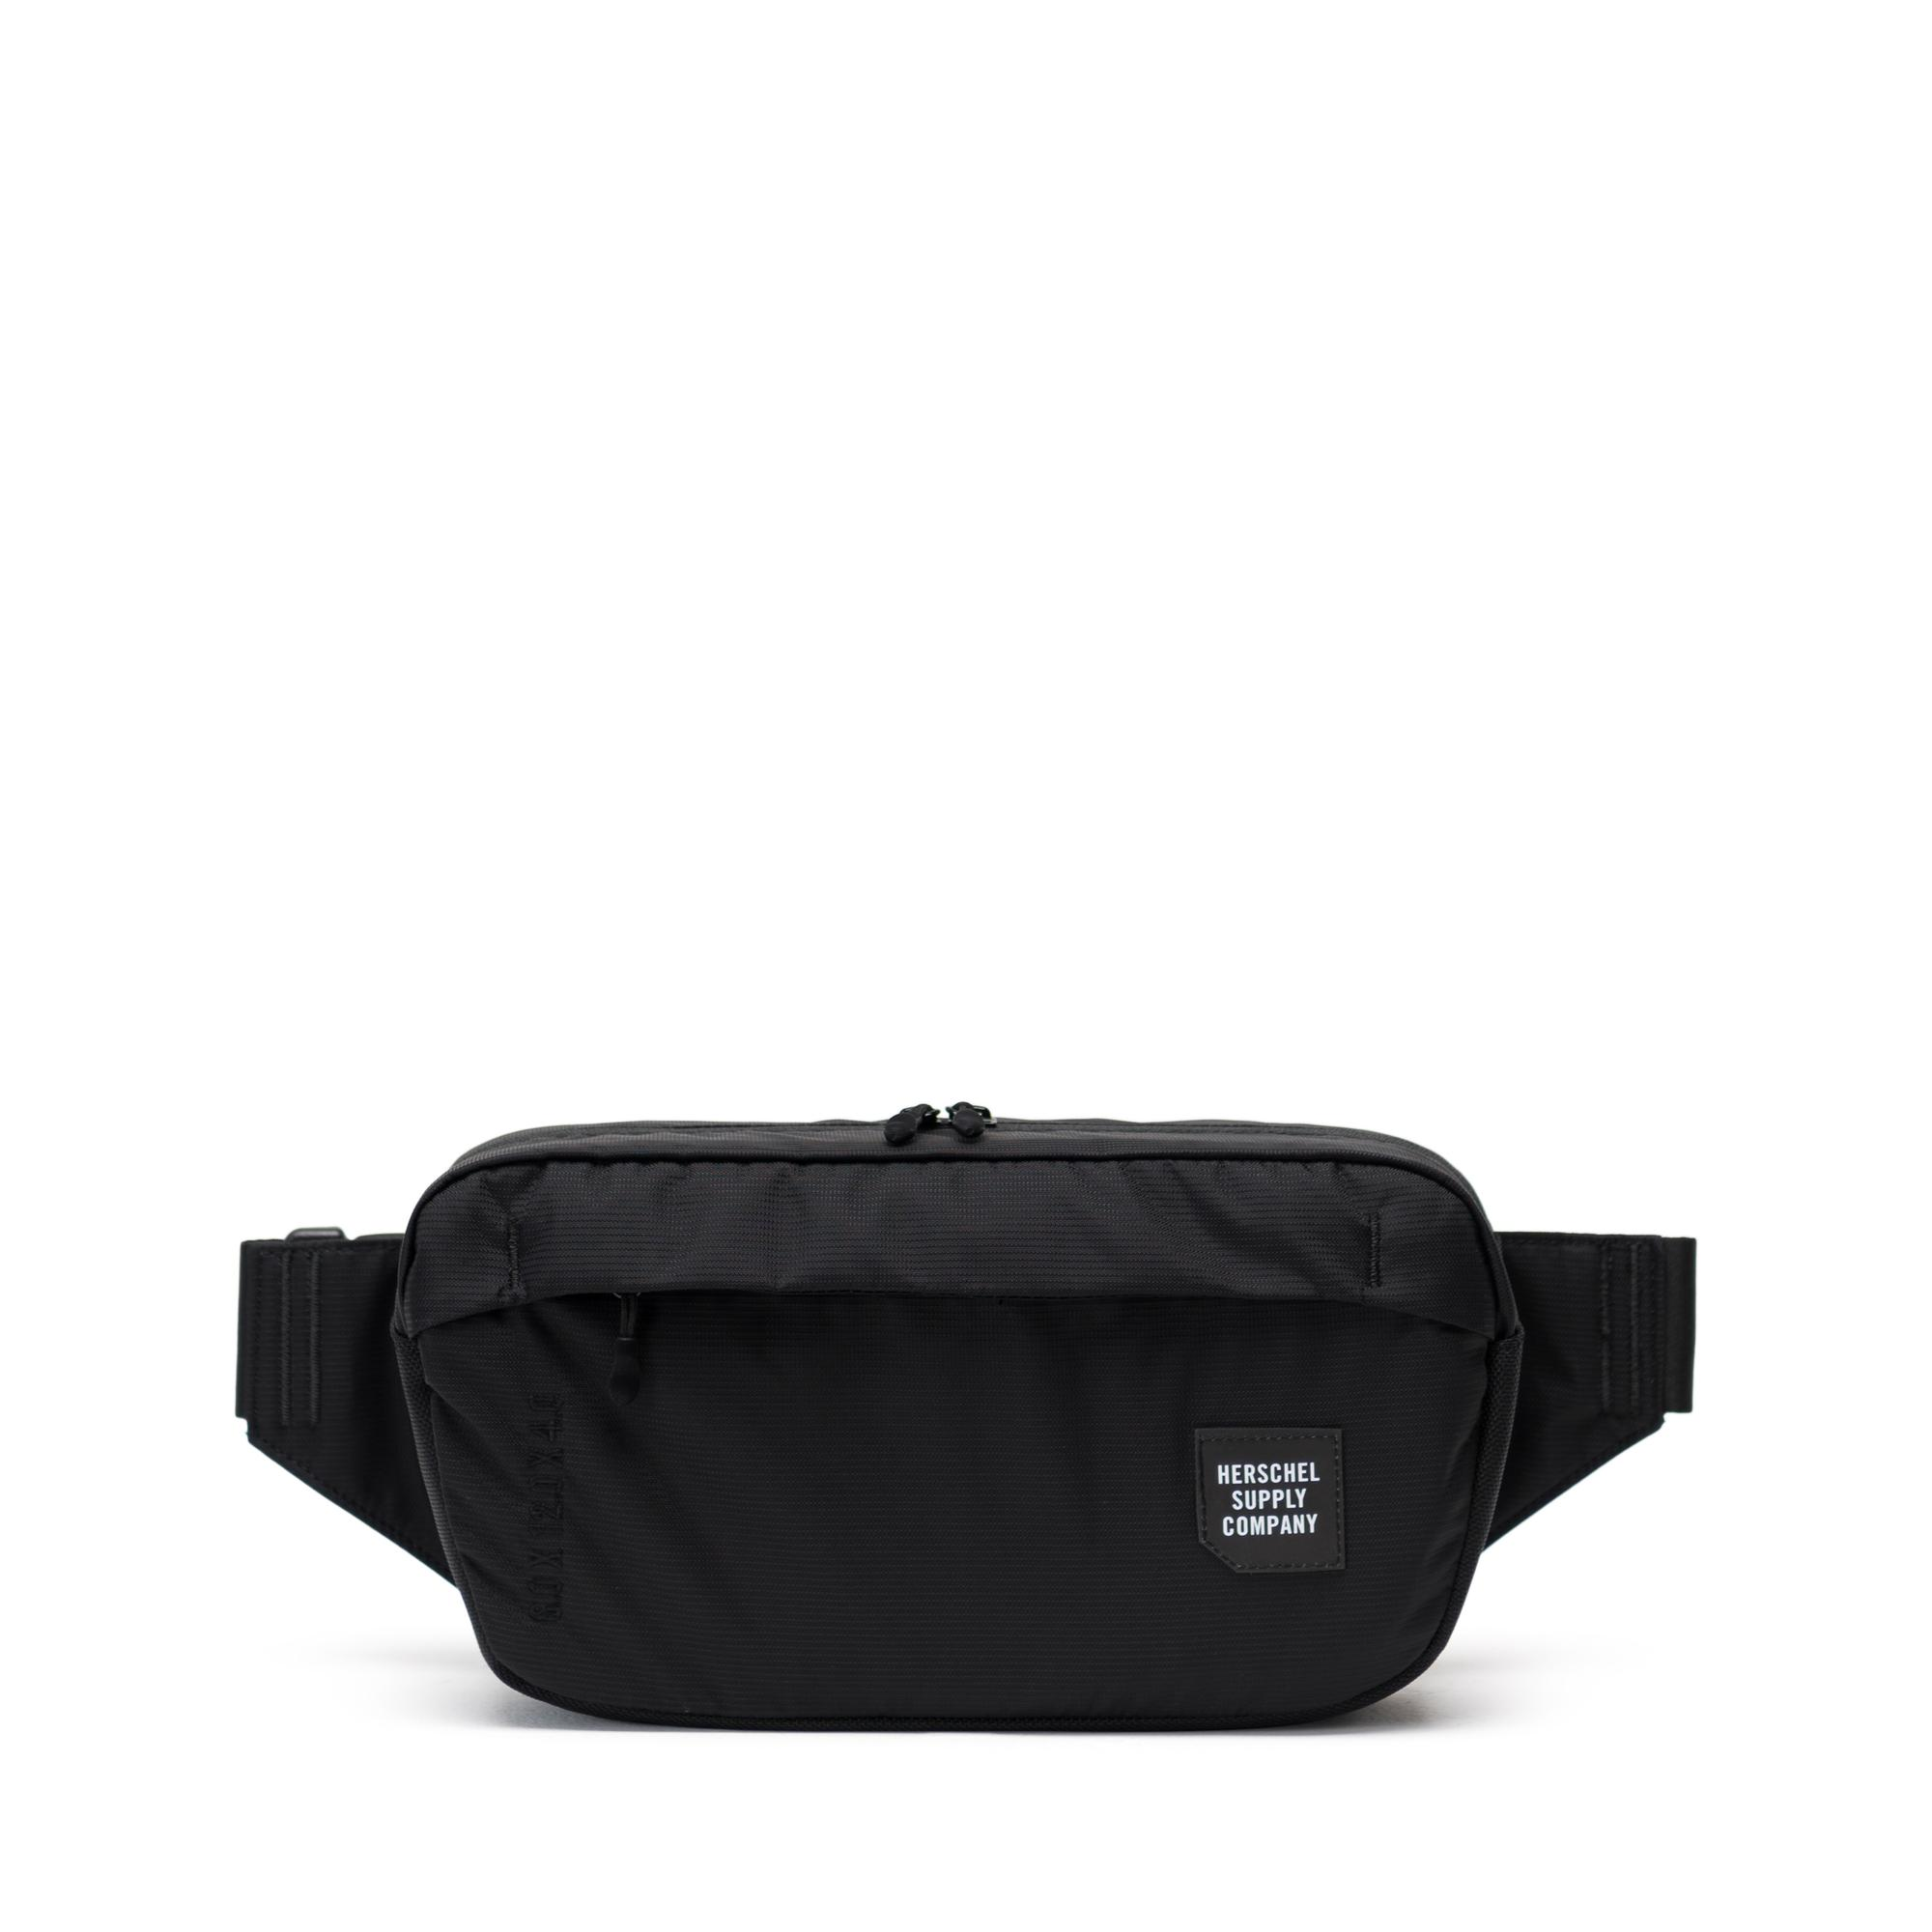 b9e2d04baeaf Tour Hip Pack Medium